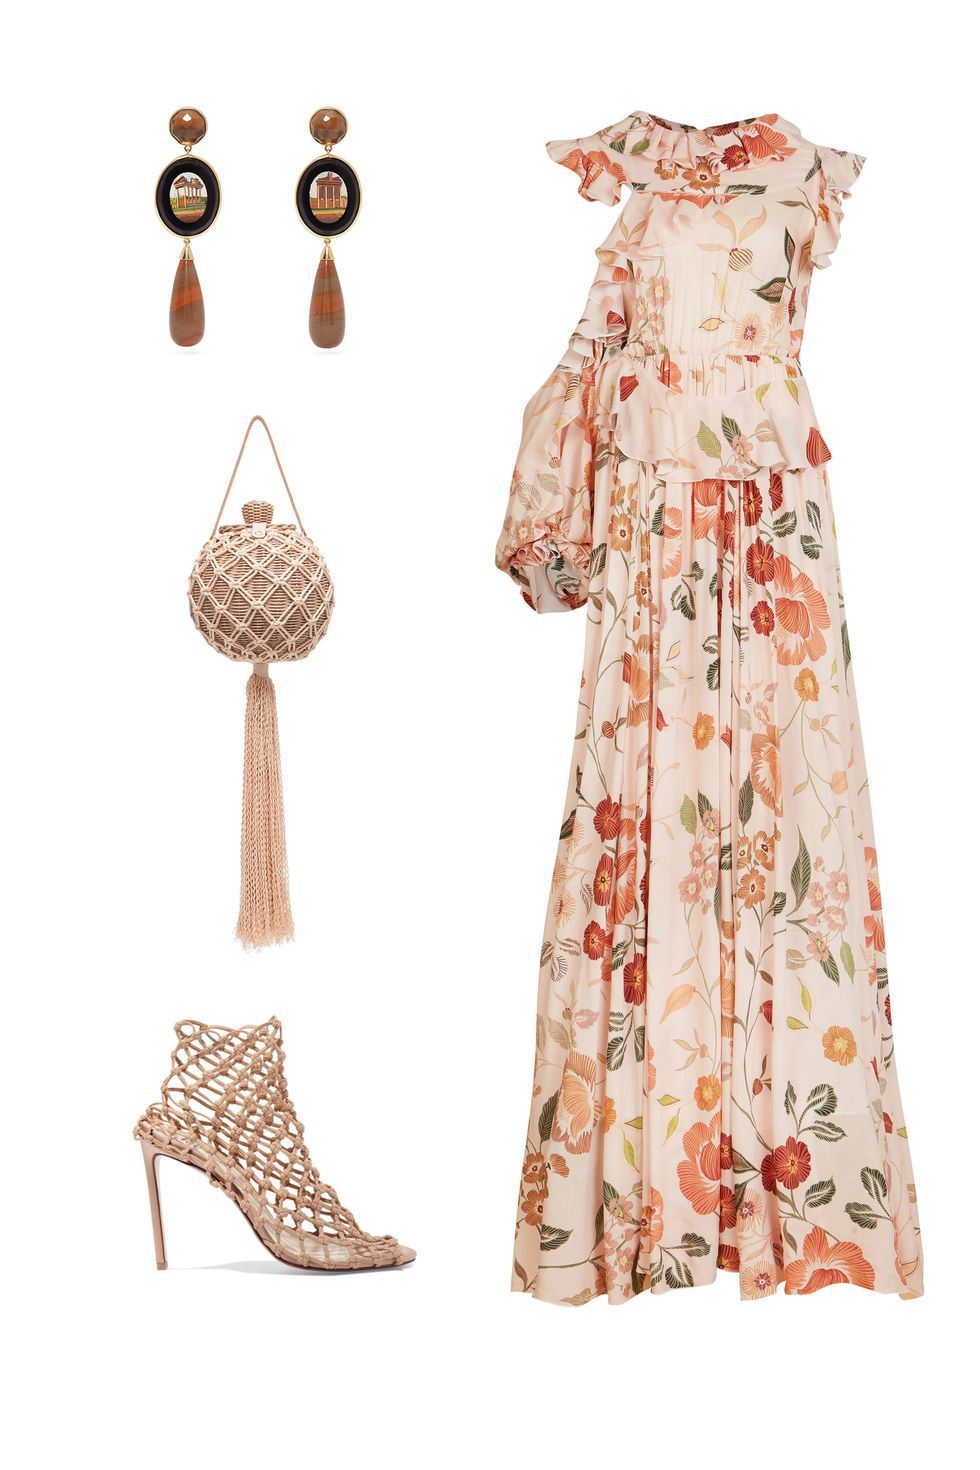 what-to-wear-for-a-fall-wedding-guest-outfit-autumn-new-school-prarie-peach-dress-maxi-floral-print-tan-shoe-sandalh-earrings-dinner.jpg